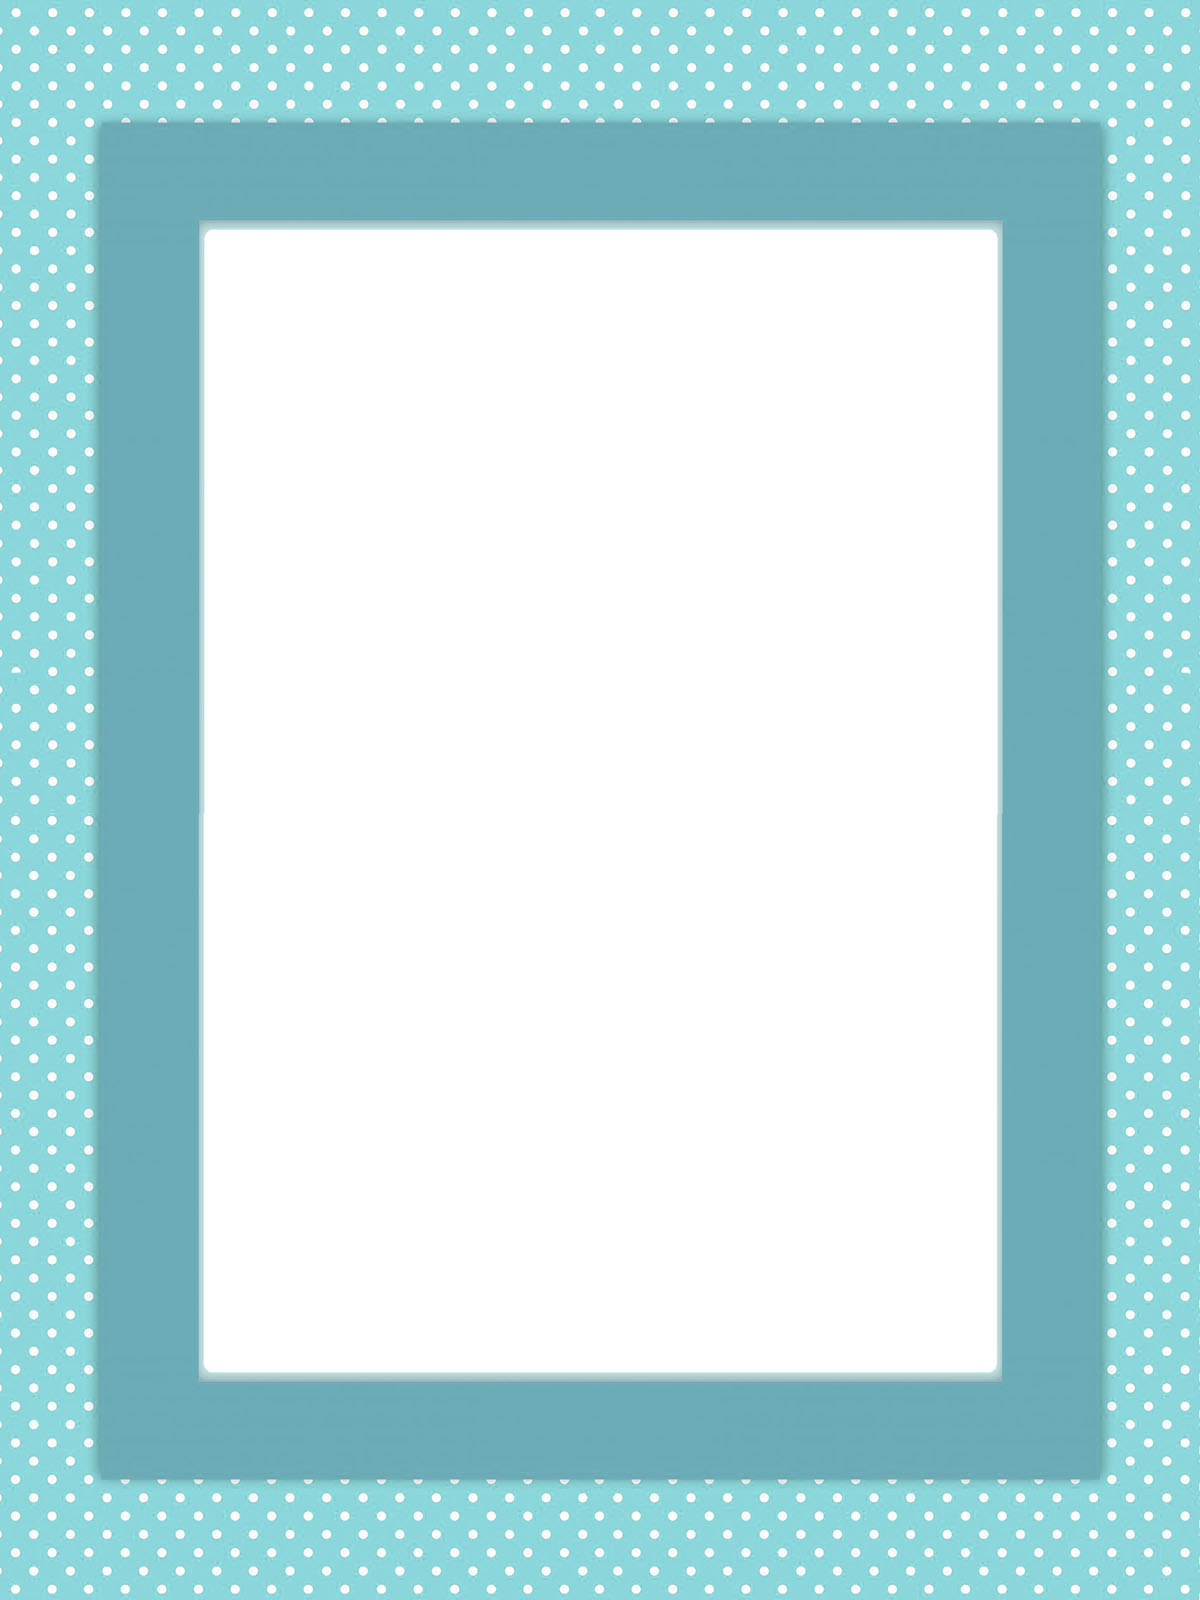 photograph regarding Printable Frame known as Printable Borders and Picture Frames